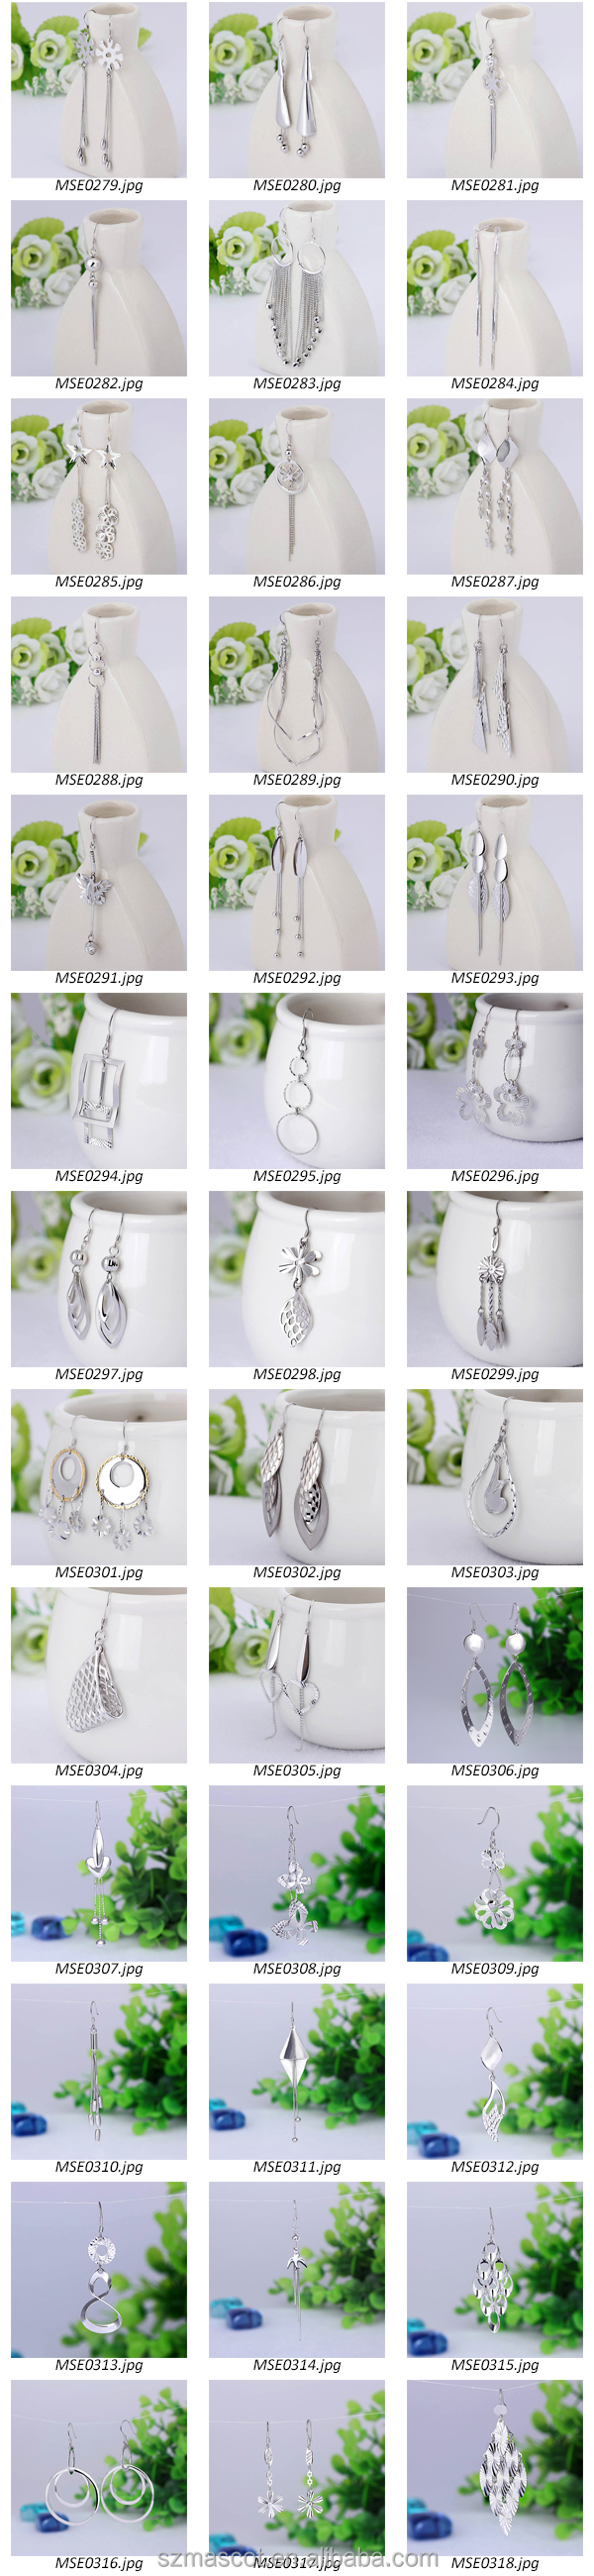 Hottest sale sterling silver stamped 925 earrings Lead free Thailand silver jewelry